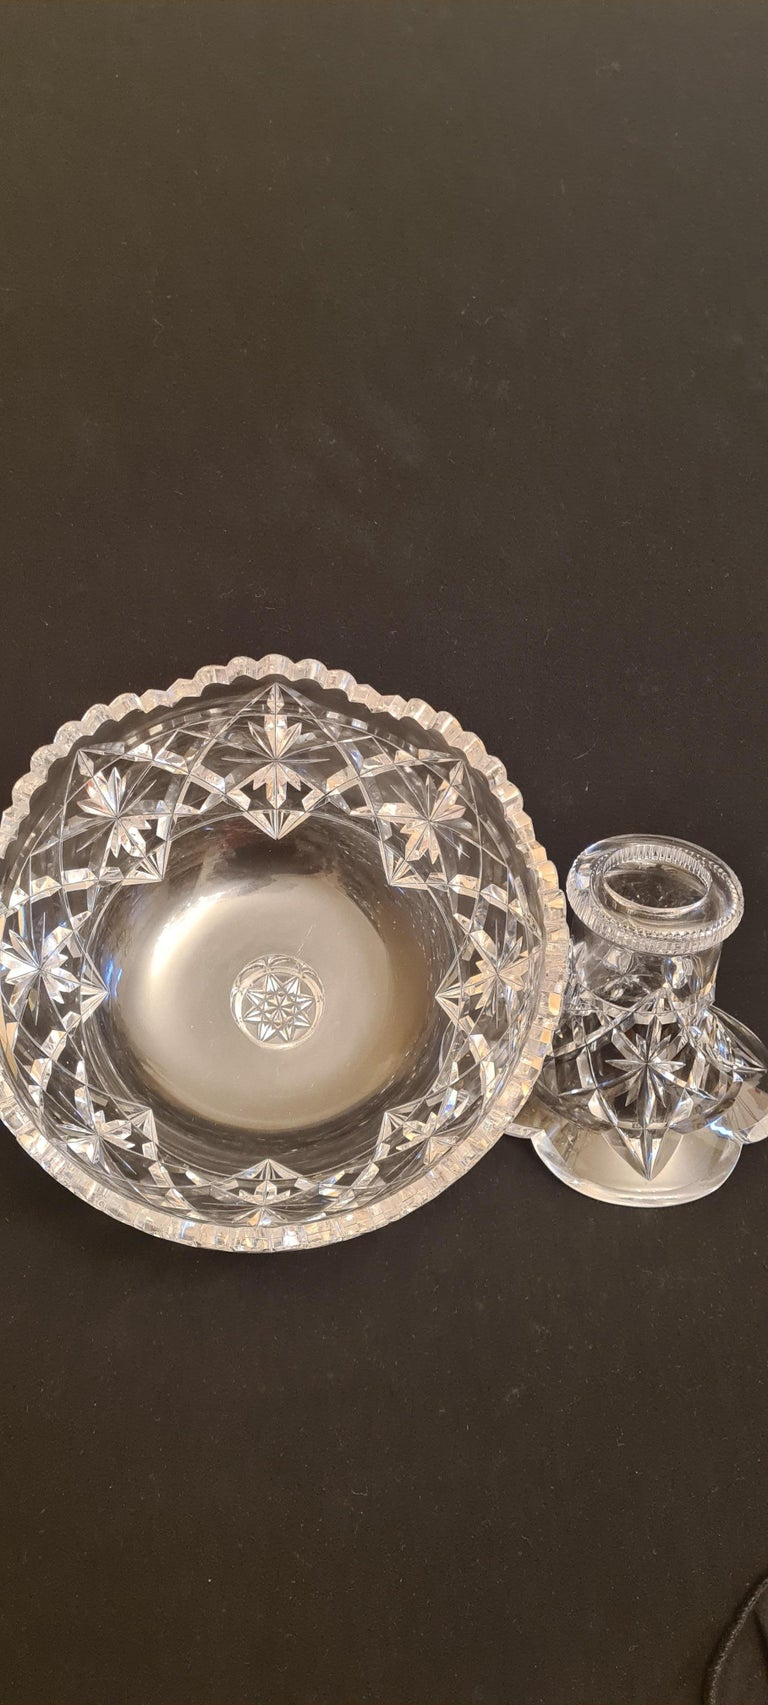 Antique Kings Pattern Cut Crystal Punch Bowl by Hawkes For Sale 5